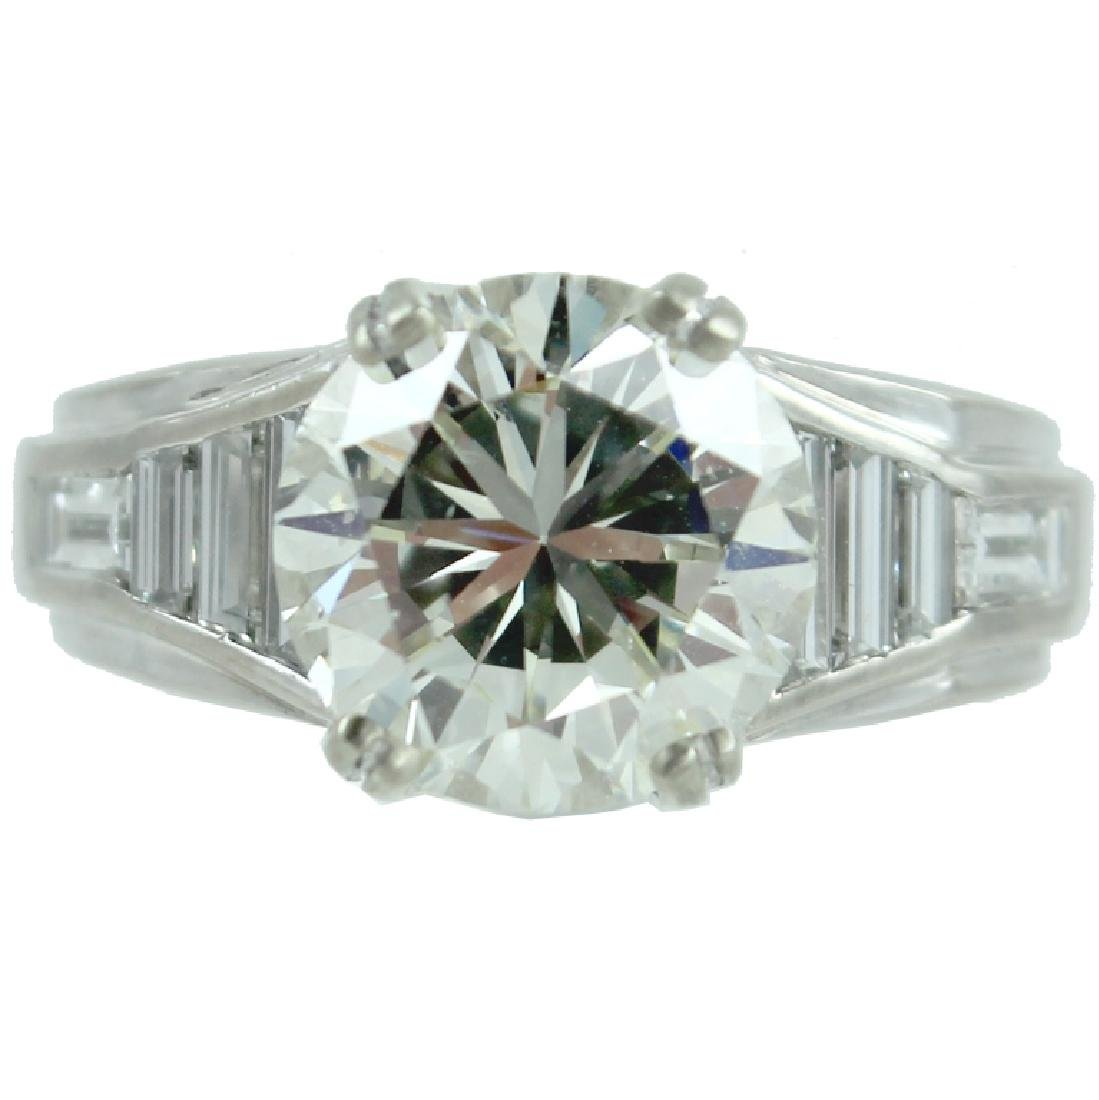 GIA CERTIFIED, 5.03 TCW ENGAGEMENT RING